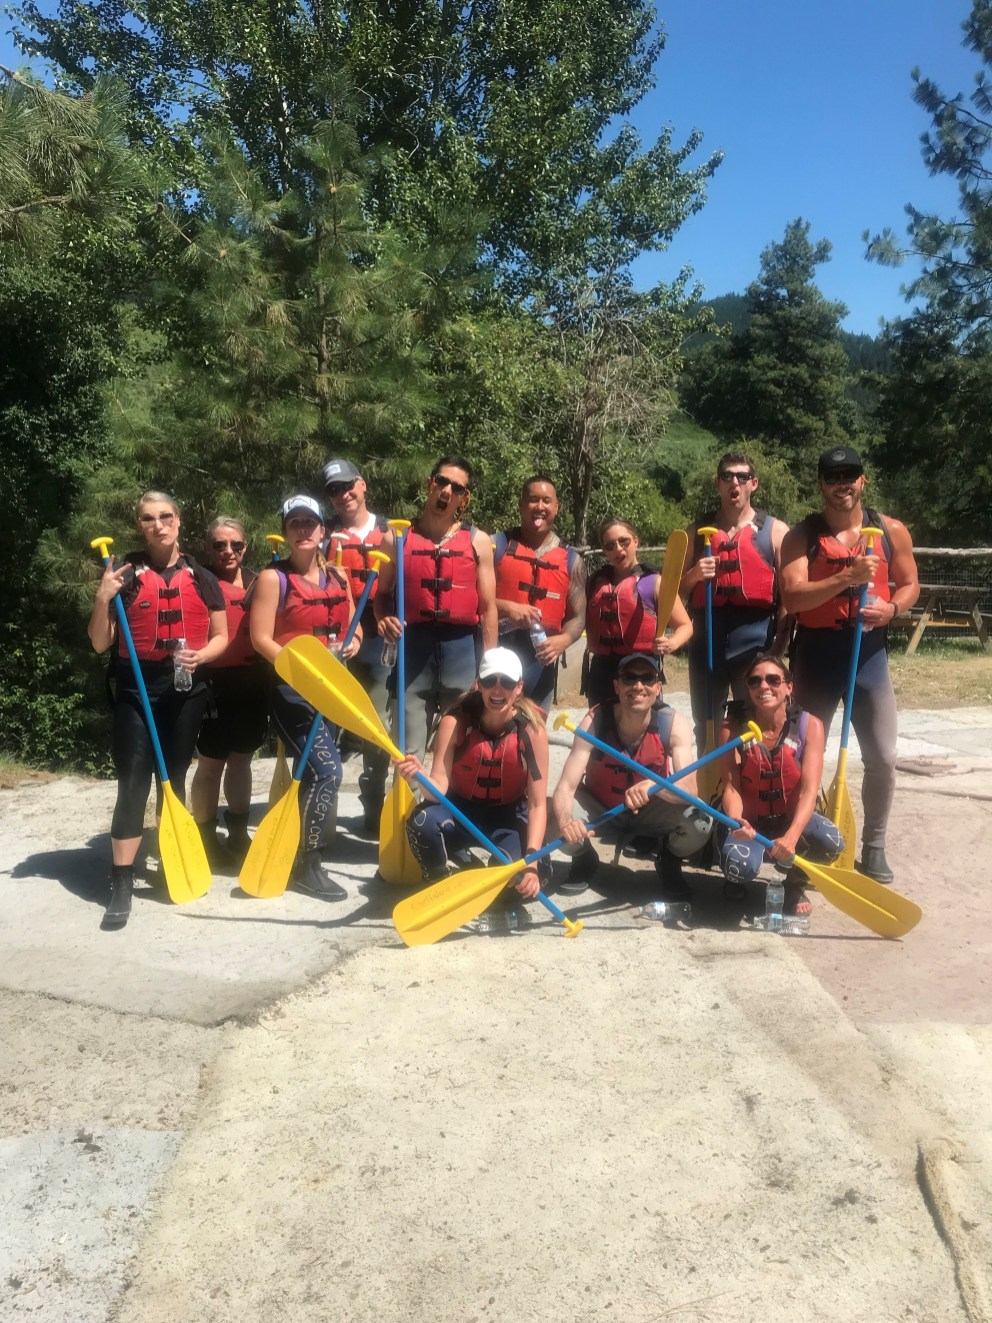 Spectrum 10 Year Anniversary Rafting Trip July 2018